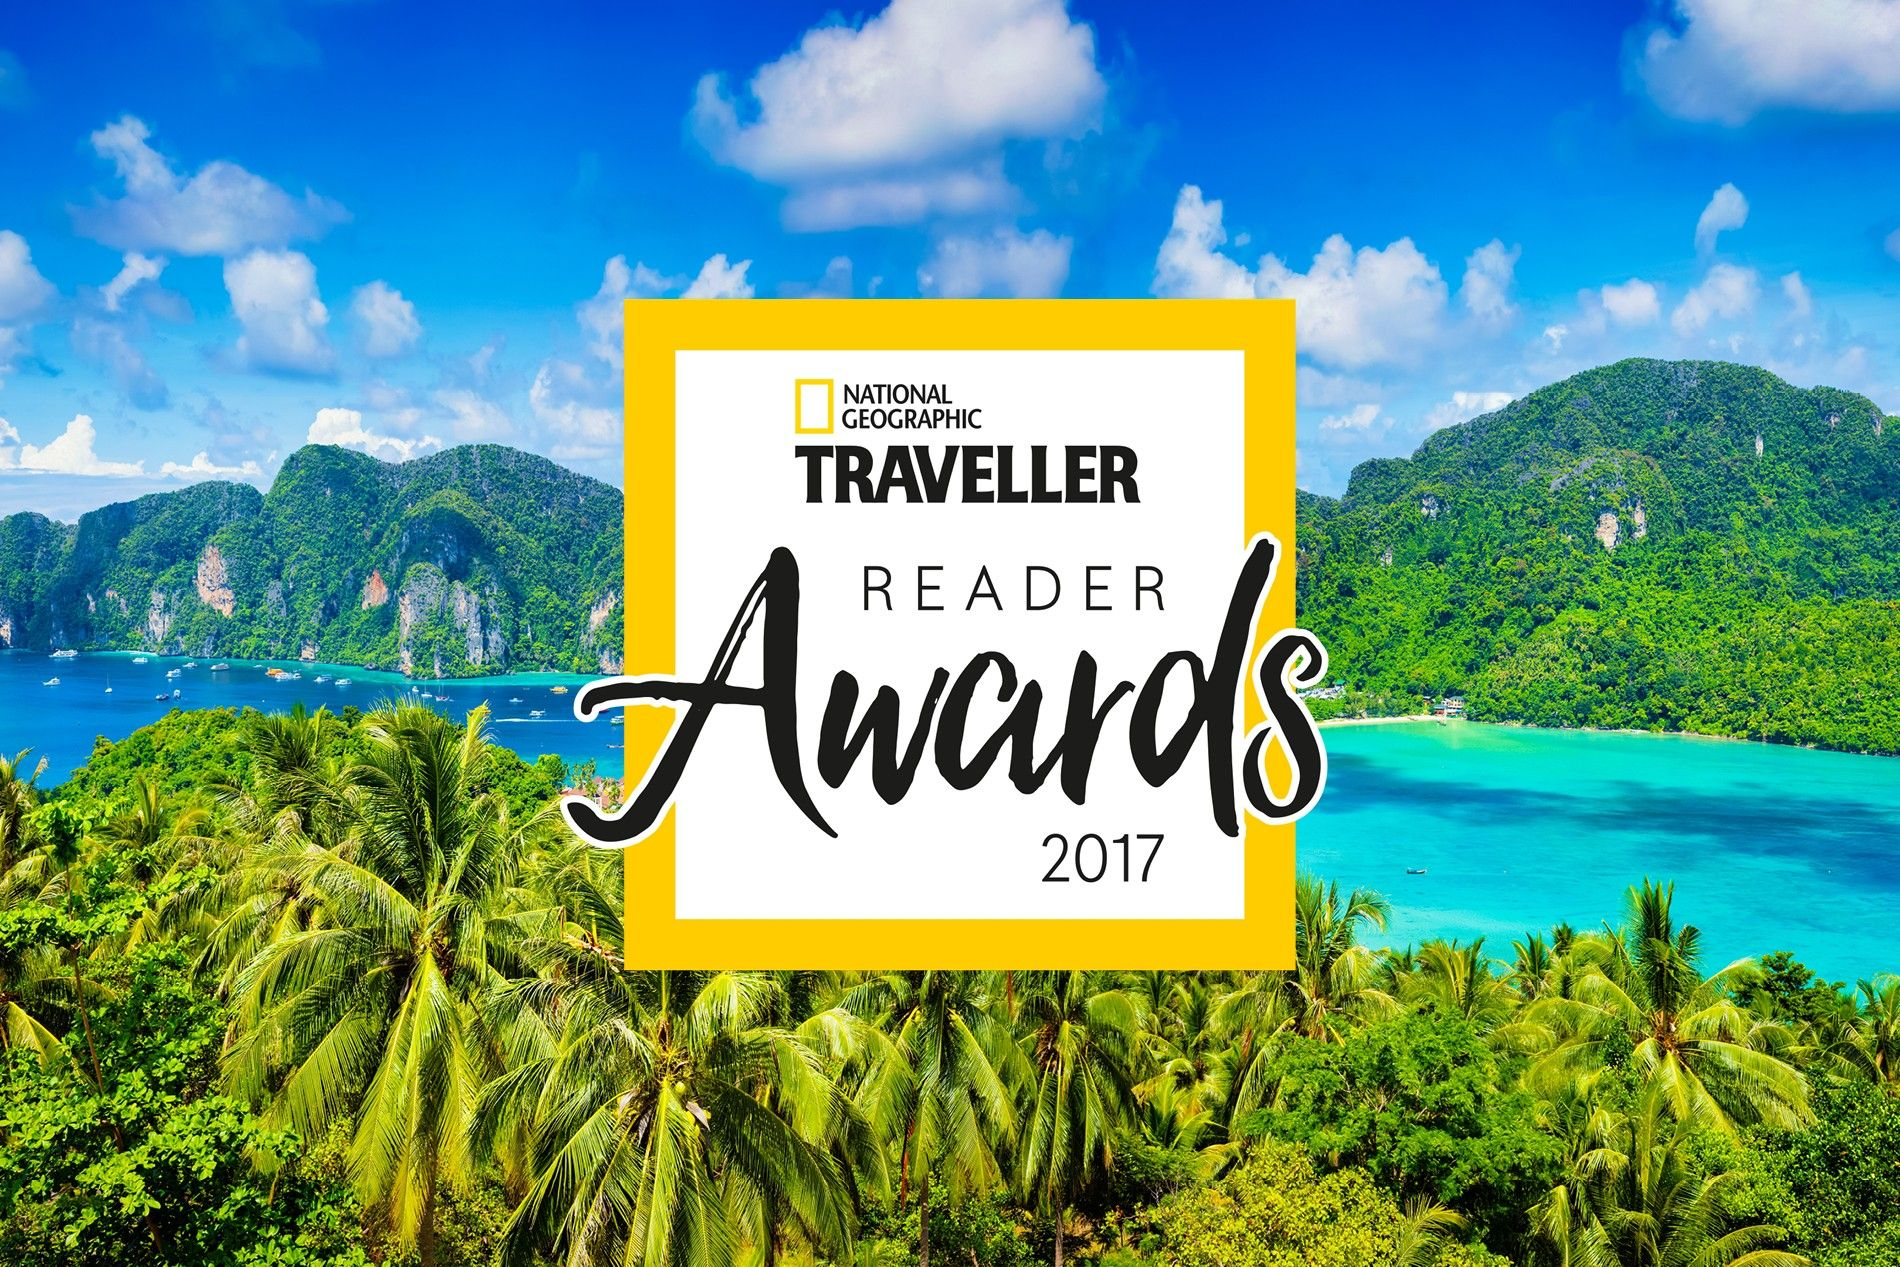 National Geographic Traveller Reader Awards 2017